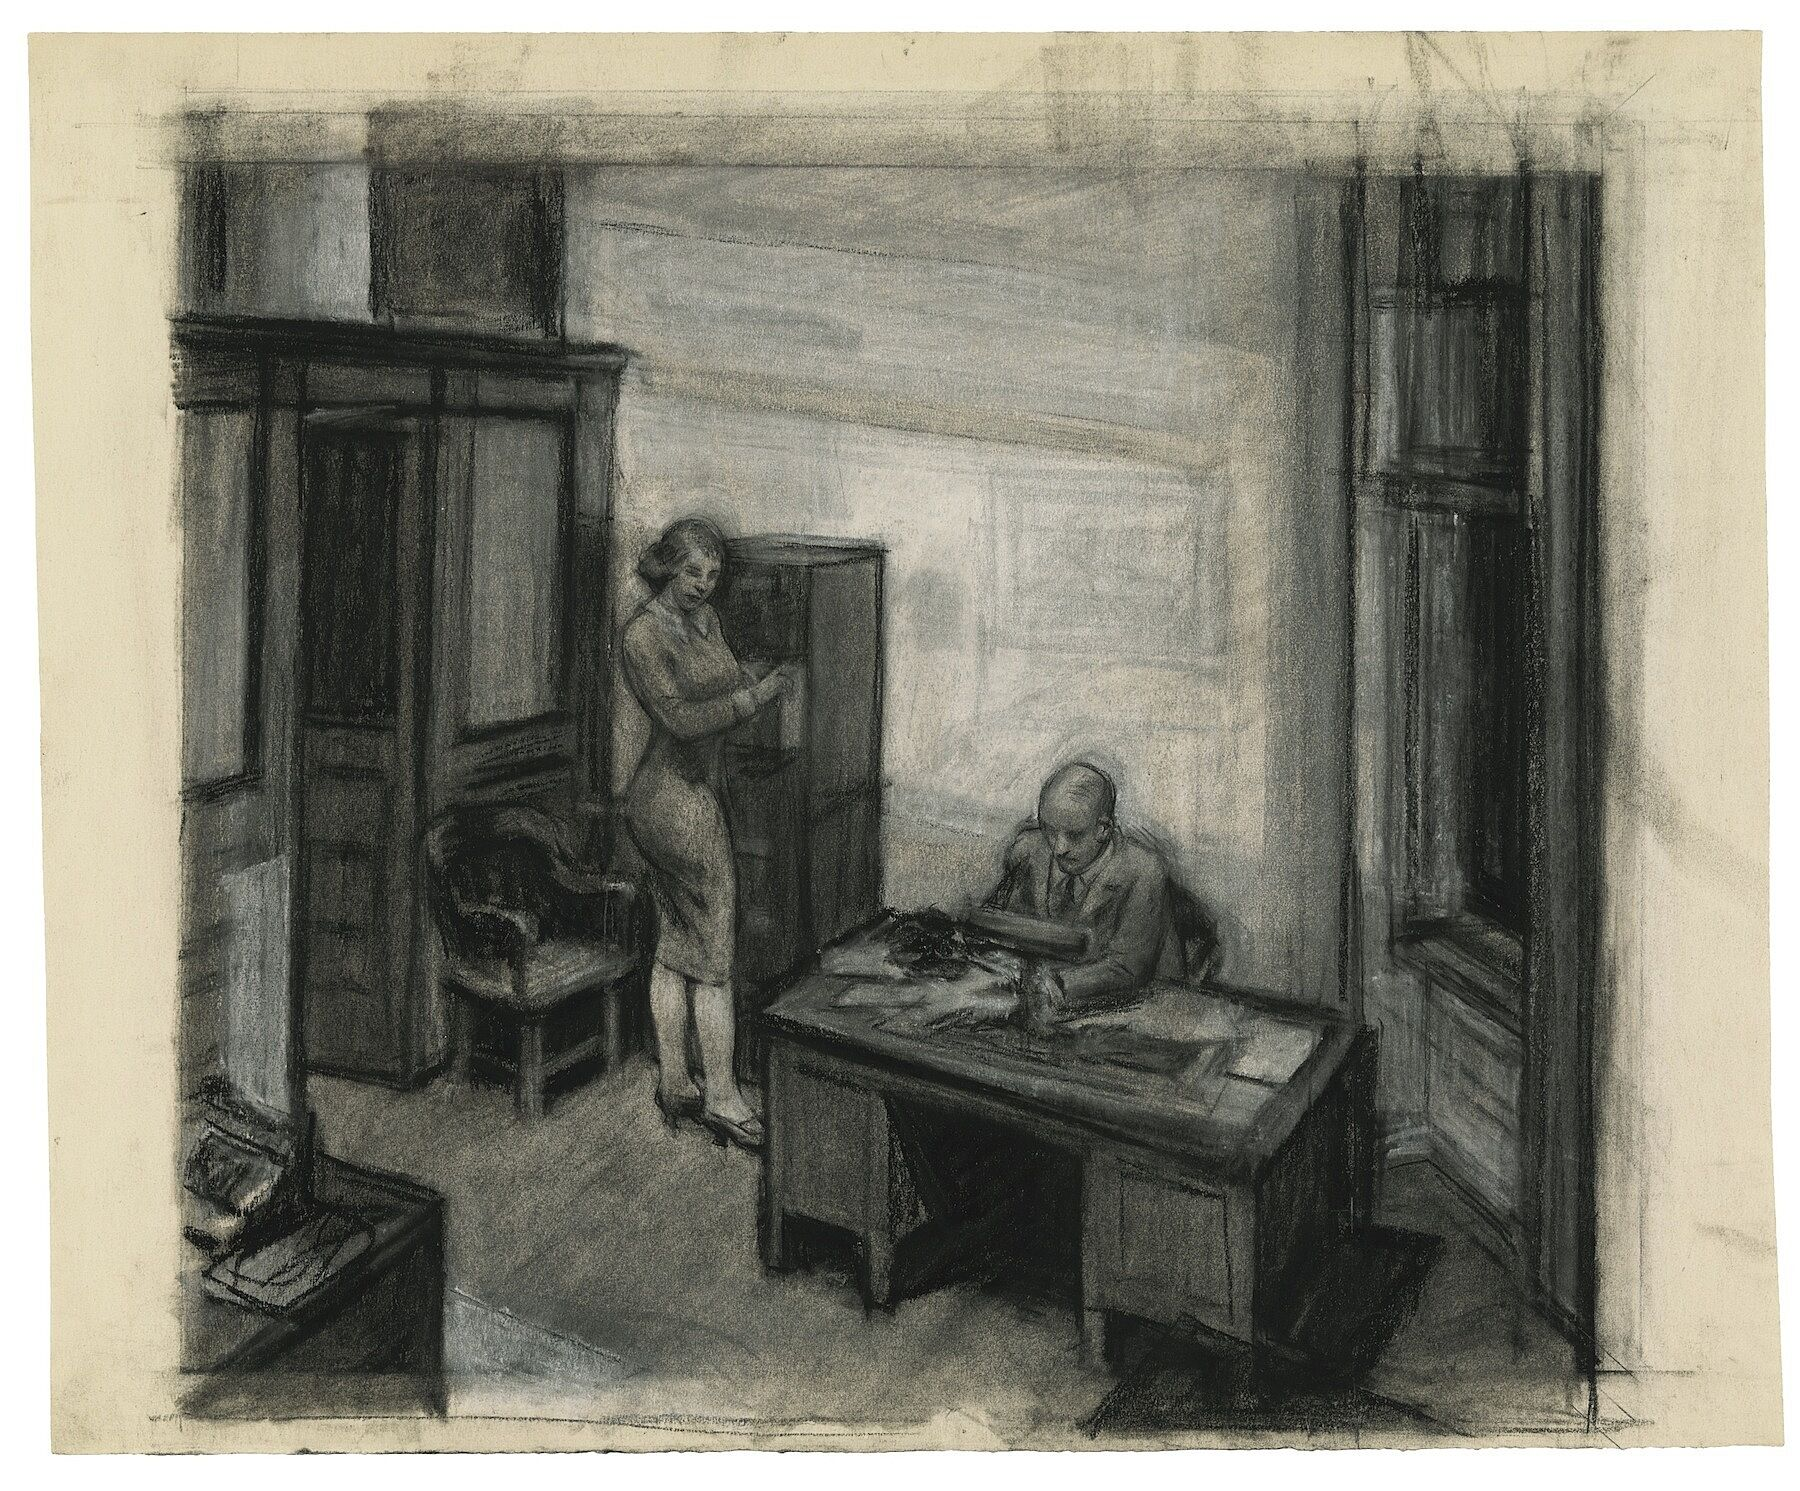 A drawing of a woman and man in an office at night.